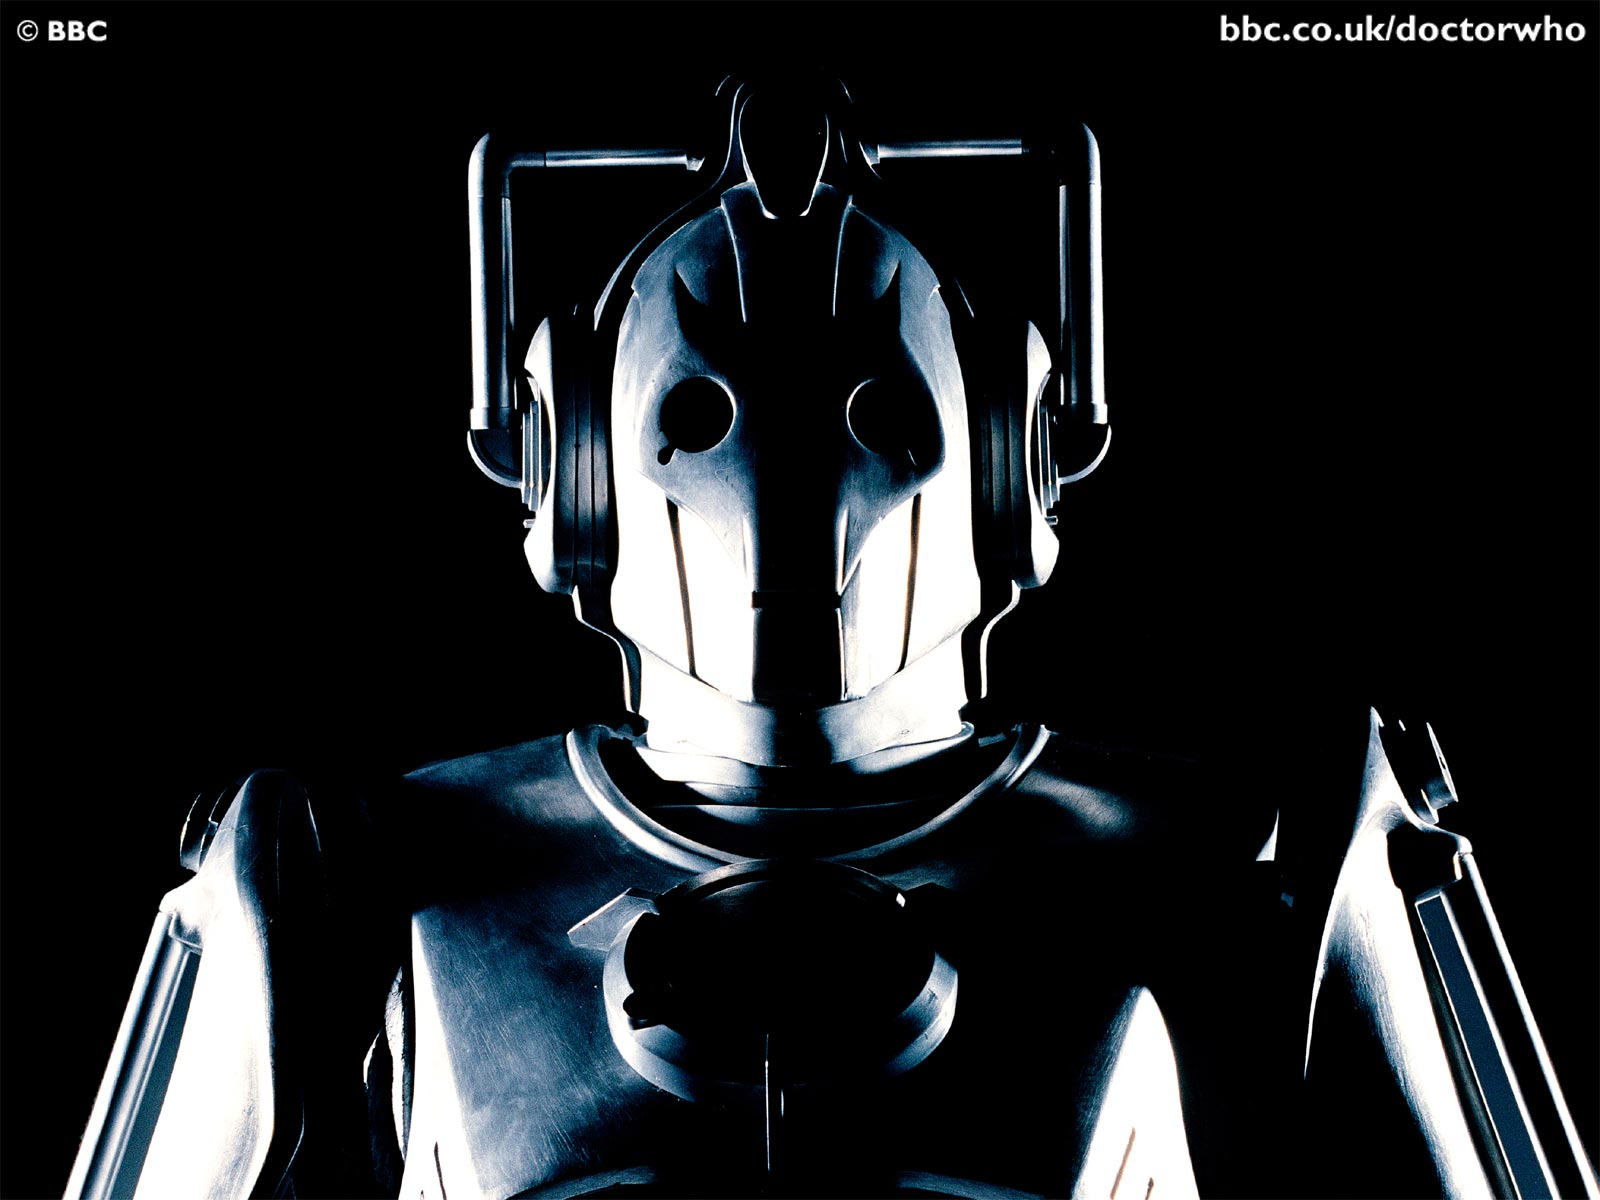 dr who_cyberman